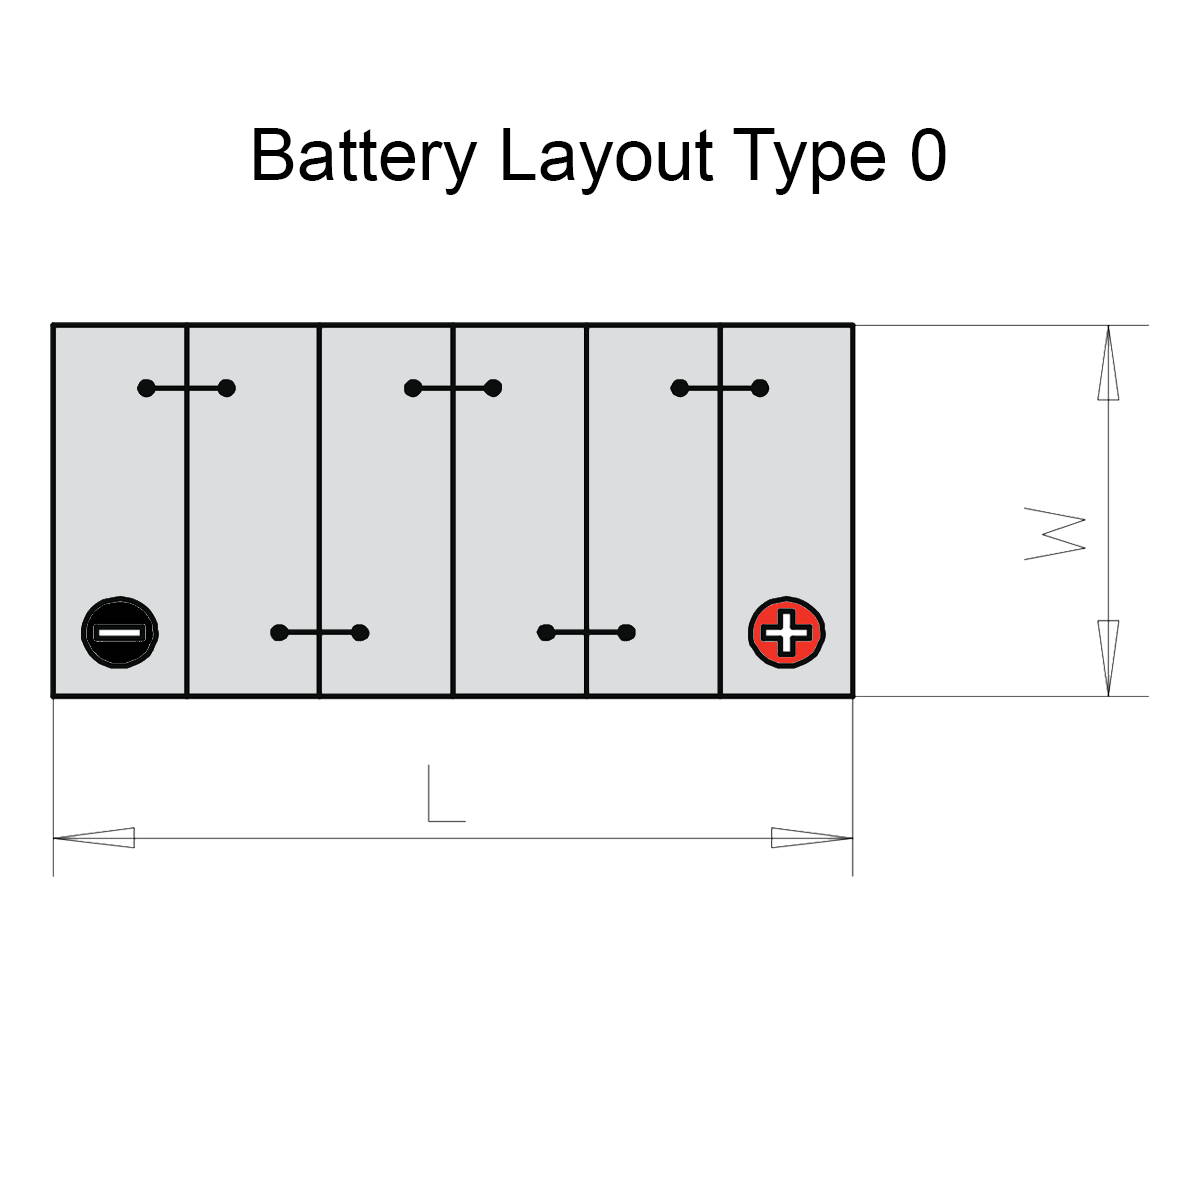 Duracell 005L / DA60 Advanced Car Battery Battery Layout